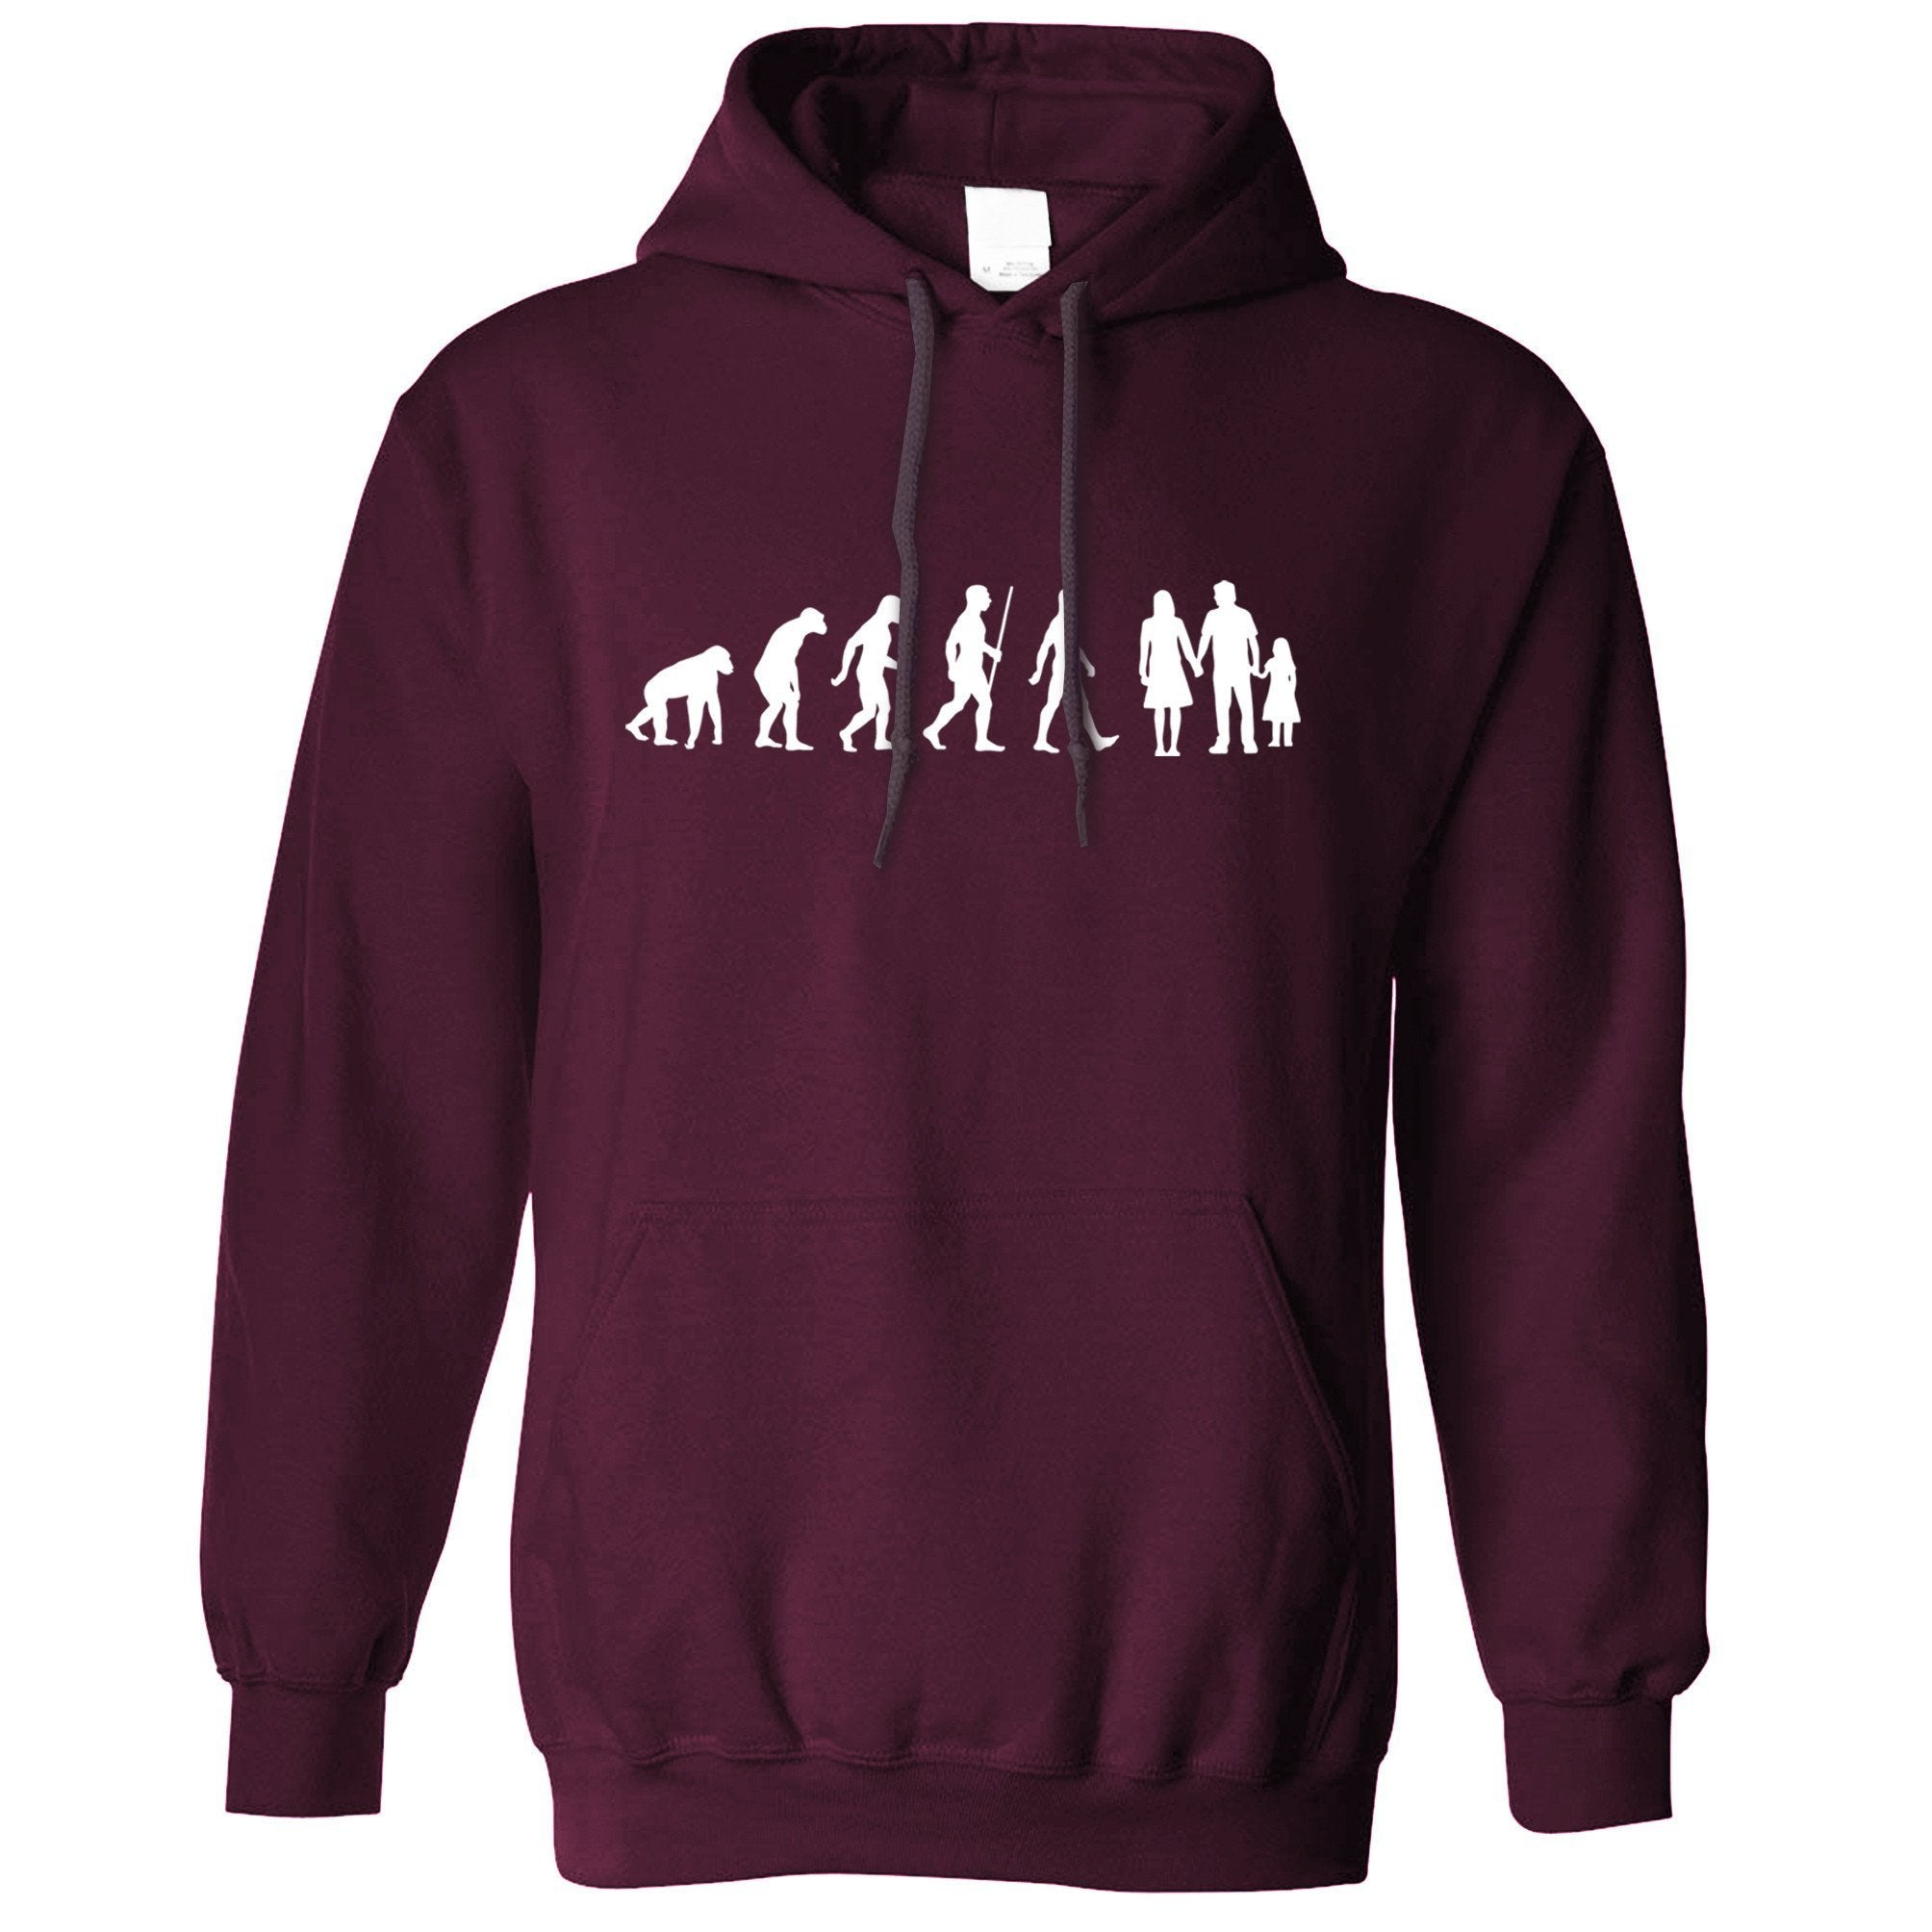 Parenthood Hoodie Evolution Of A Family Two Girls Hooded Jumper